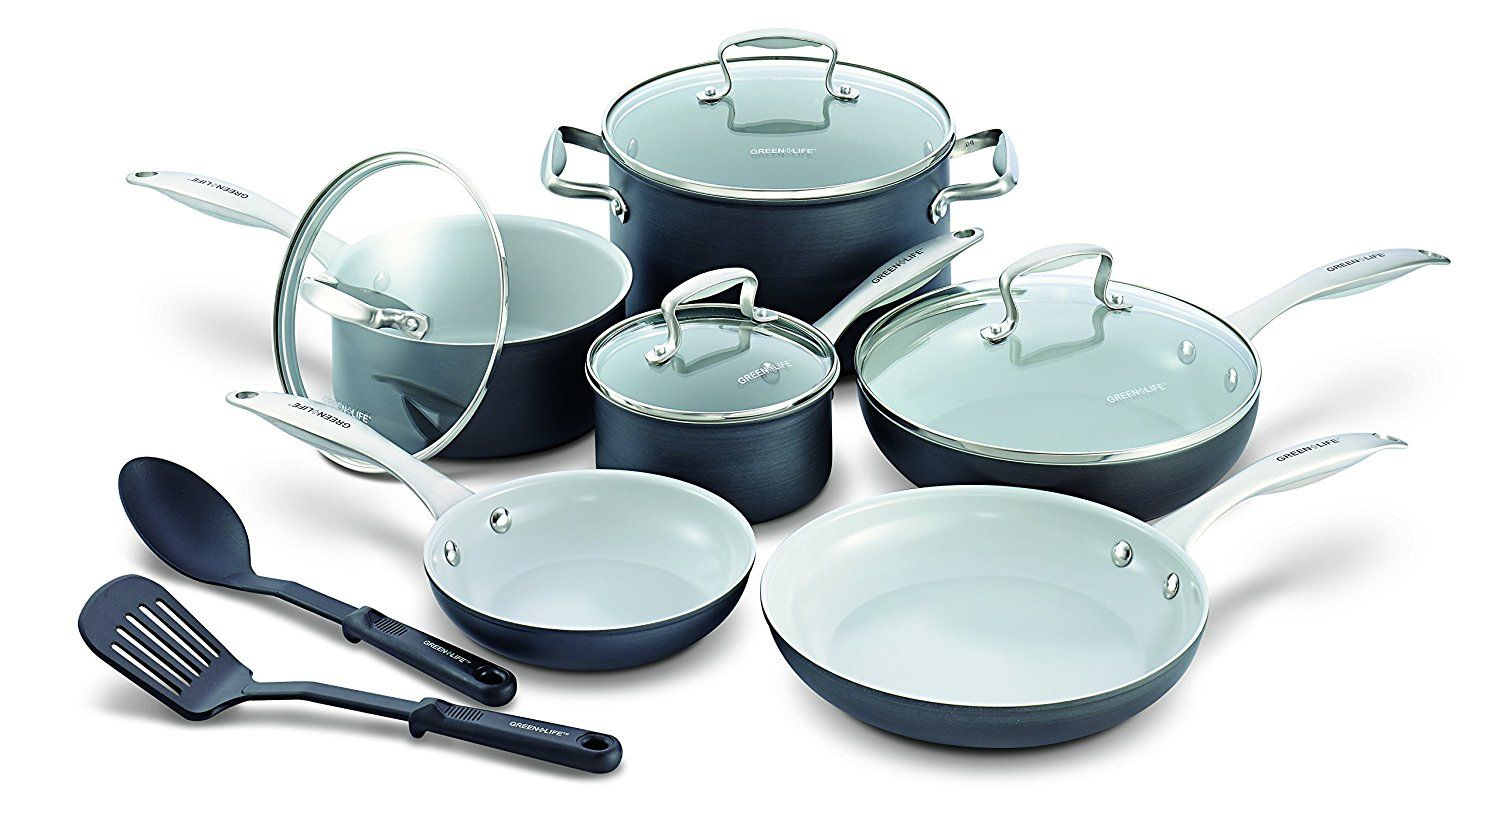 Cookware gt see more select by calphalon ceramic nonstick 8 inch an - Greenlife 12 Piece Hard Anodized Non Stick Ceramic Classic Cookware Set Learn More